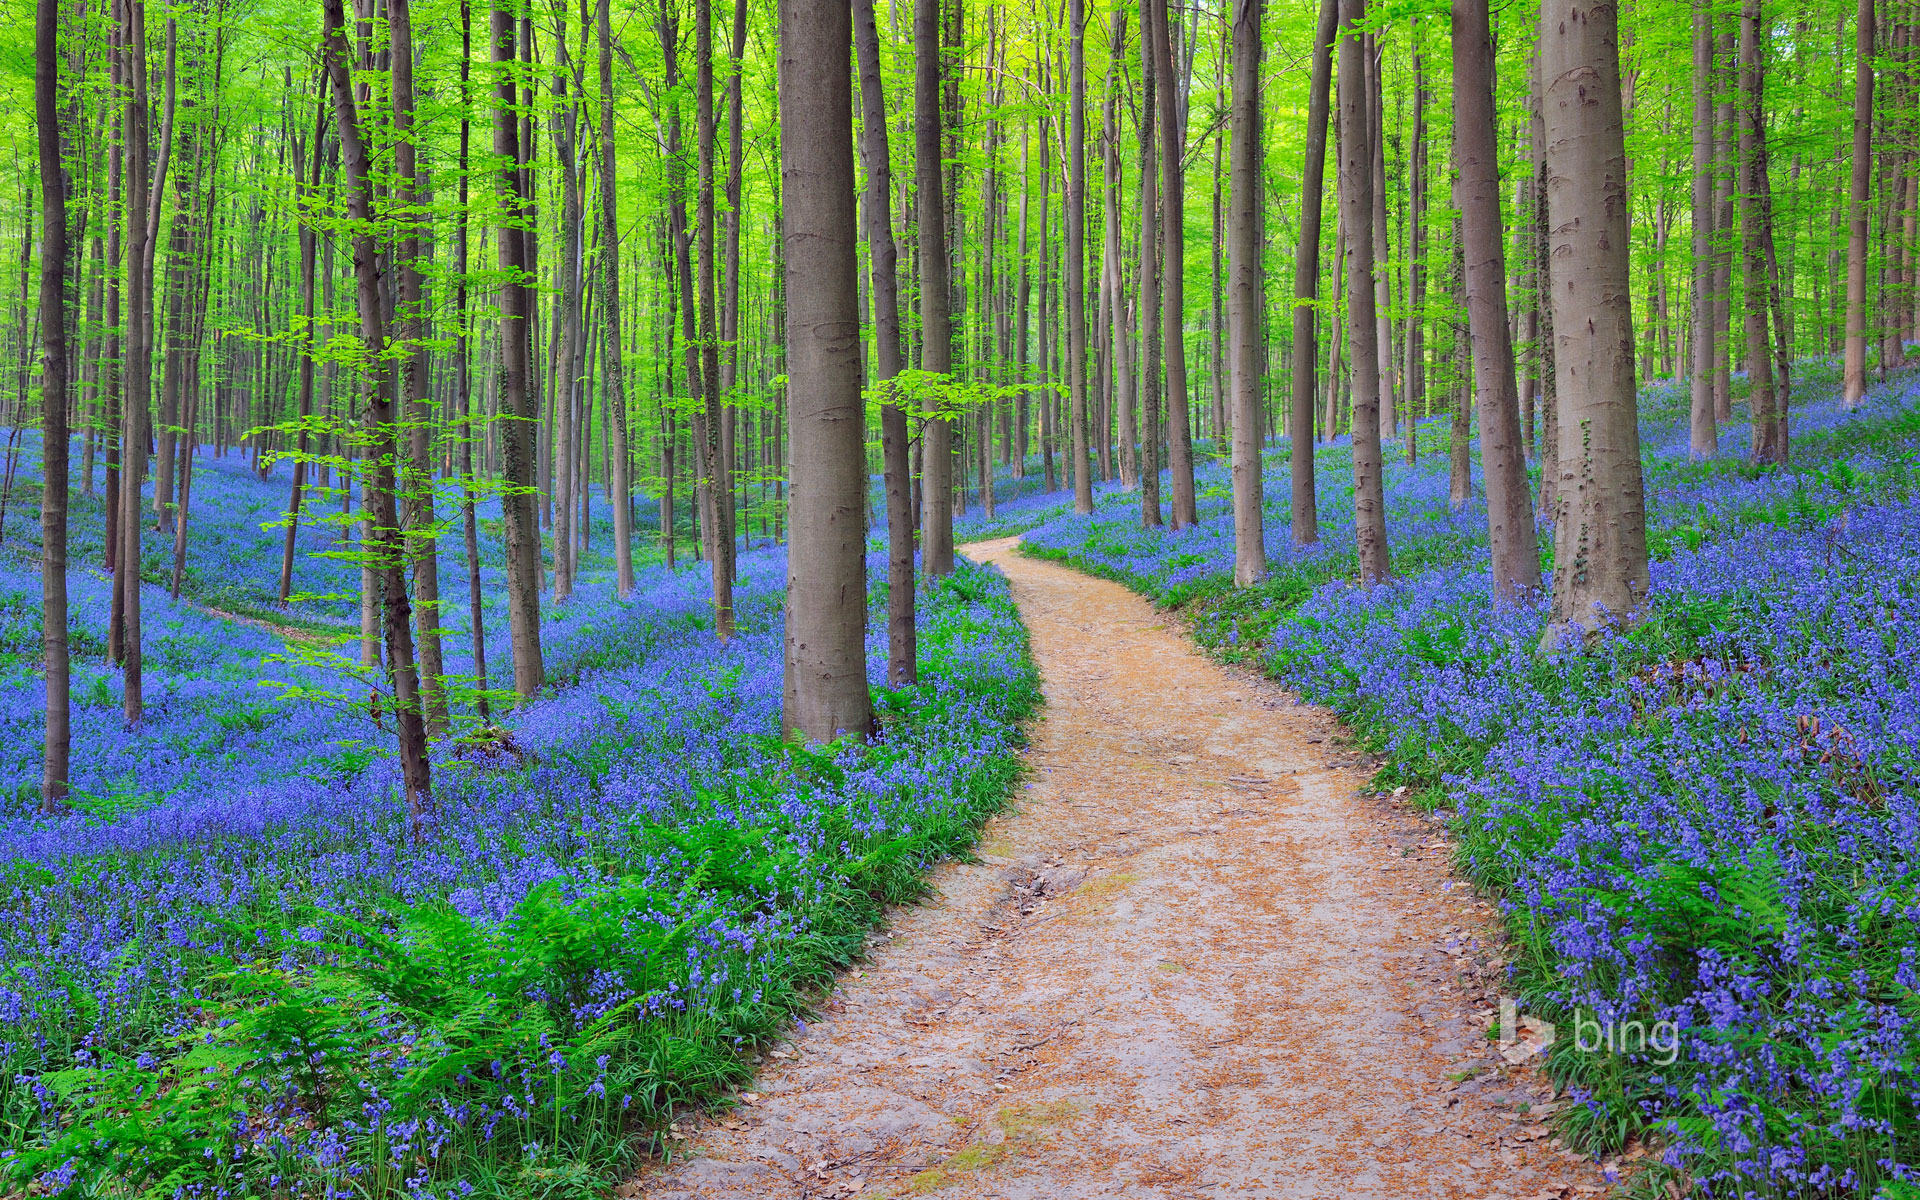 Bluebells in the Halle Forest near Halle, Belgium